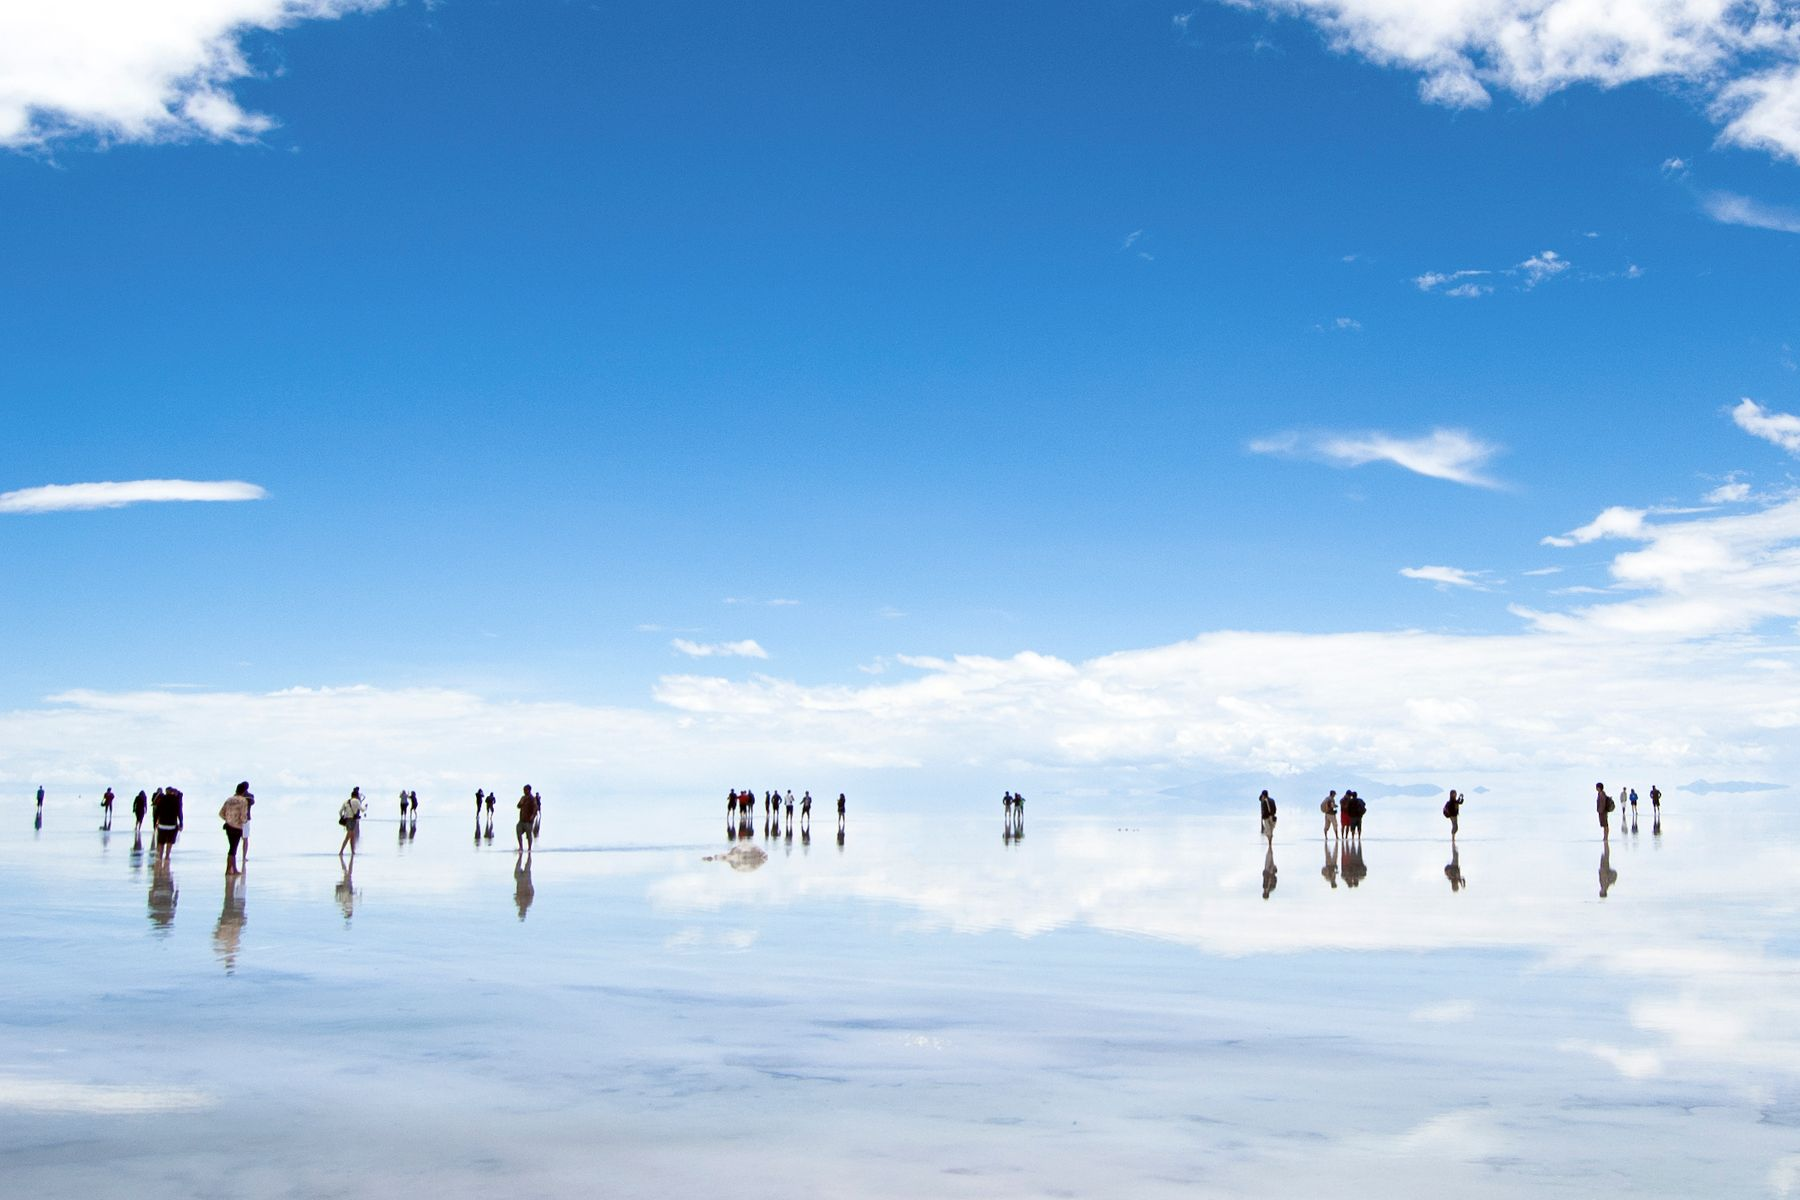 Salar de Uyuni in Bolivia is one of the lesser known world wonders